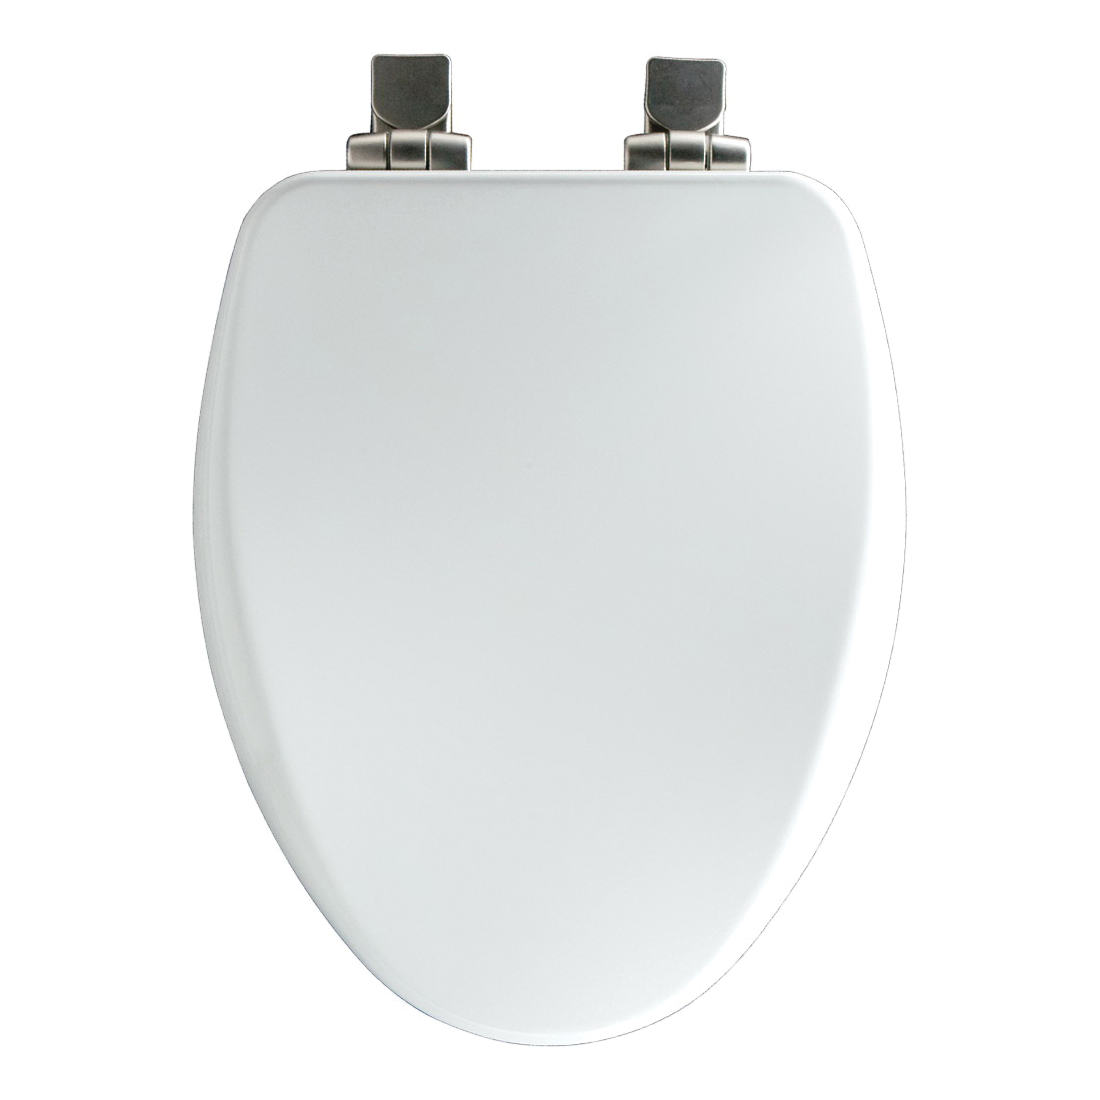 Church® 7F18170NISL 000 ALESIO II™ Toilet Seat With Cover, Elongated Bowl, Closed Front, Wood, White, Easy Clean/Change® Hinge